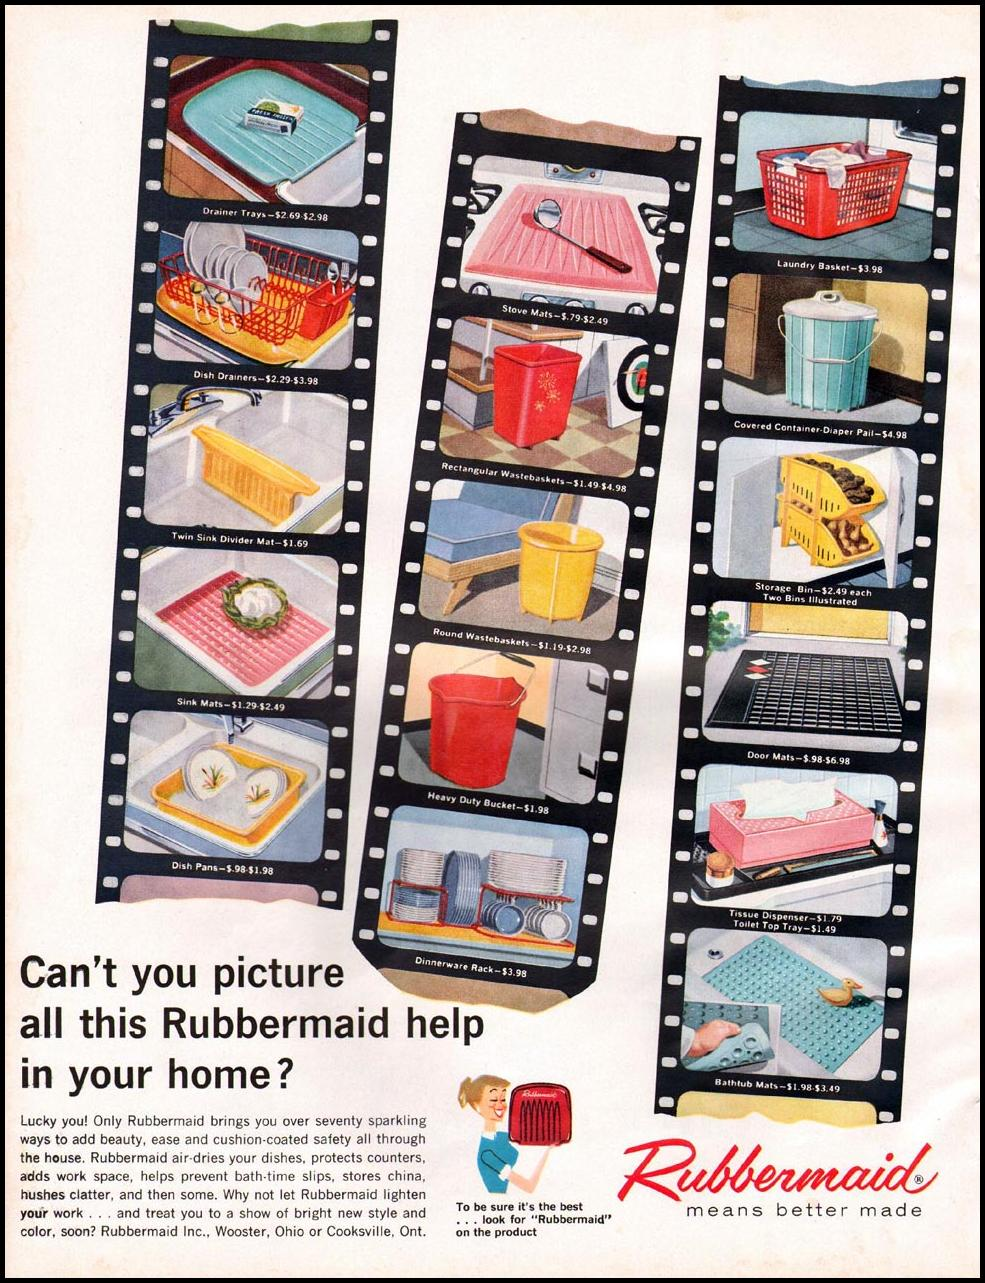 RUBBERMAID HOUSEWARE BETTER HOMES AND GARDENS 03/01/1960 p. 148